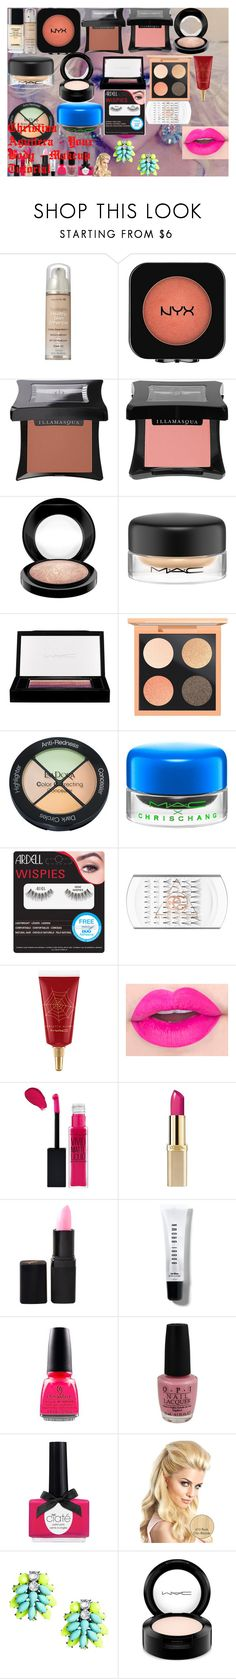 """""""Christina Aguilera - Your Body - Makeup Tutorial"""" by oroartye-1 on Polyvore featuring beauty, Lumière, Neutrogena, Illamasqua, MAC Cosmetics, Isadora, Ardell, Maybelline, L'Oréal Paris and Barry M"""